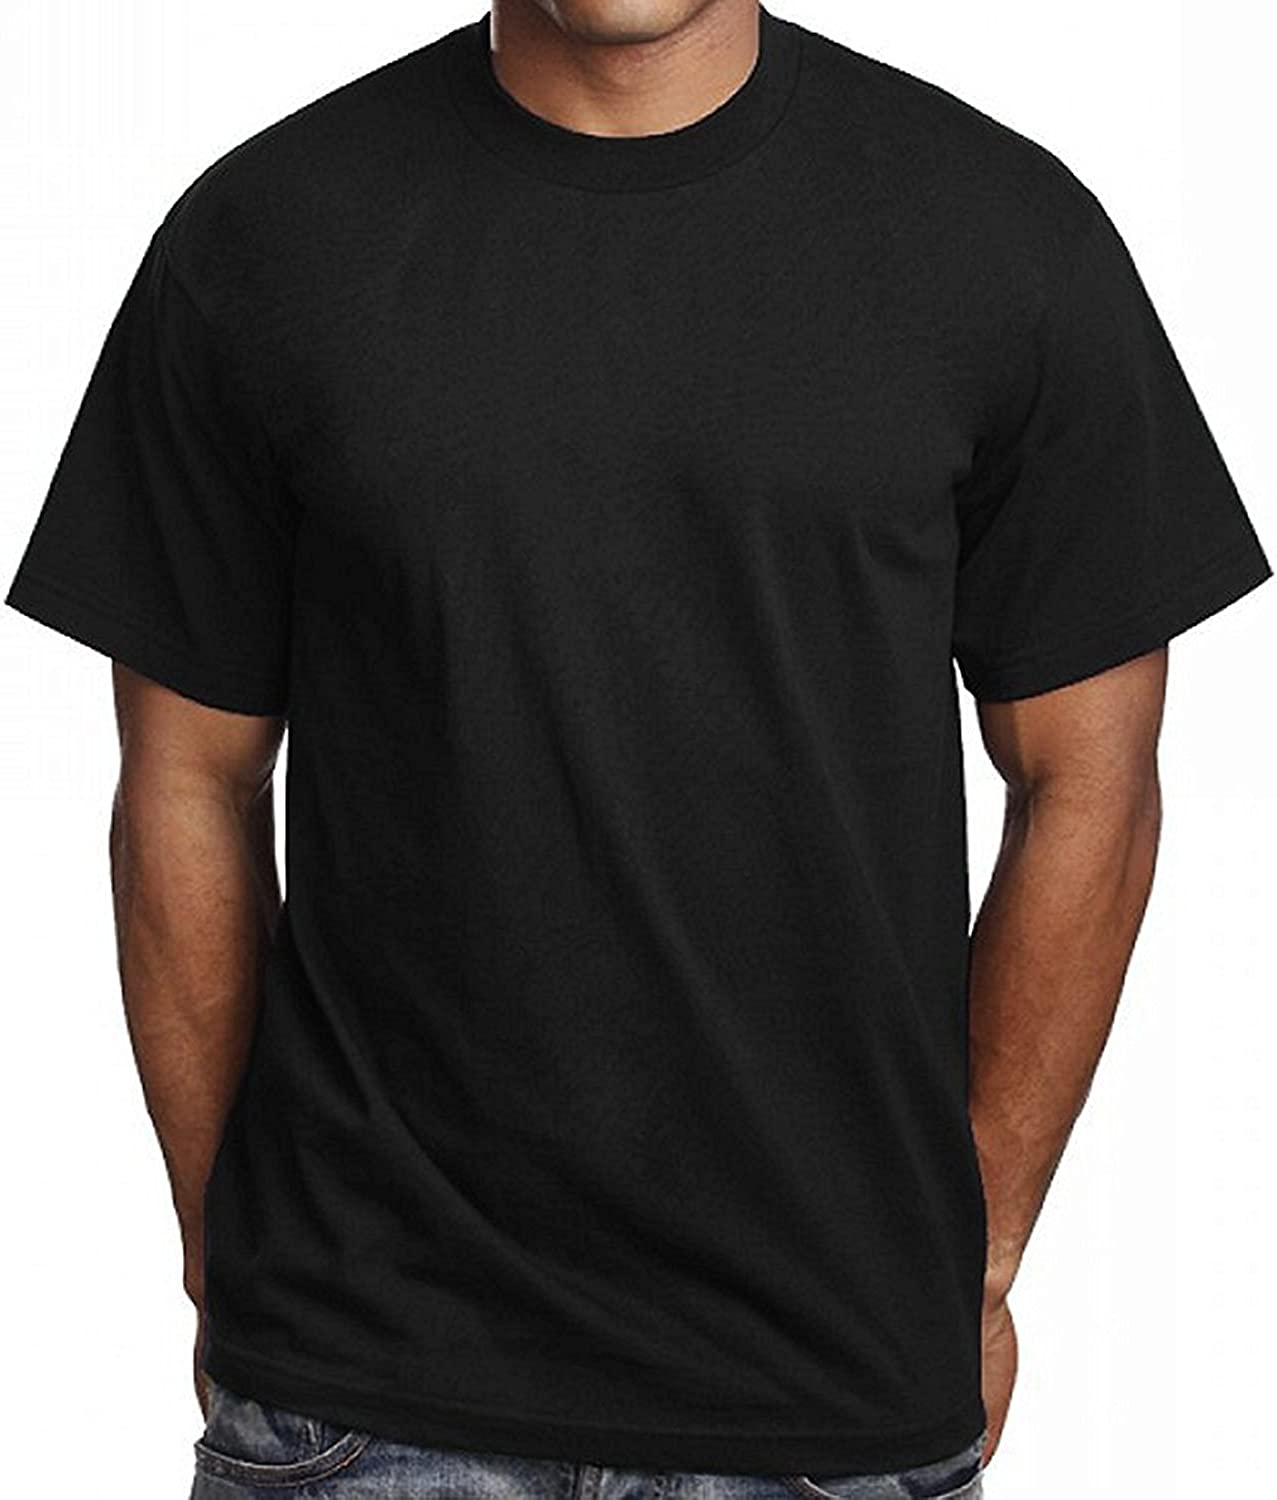 3 Pack Our shop OFFers Bombing new work the best service Men's Plain Black T Shirts Athletic 5 Pro Blank Tees